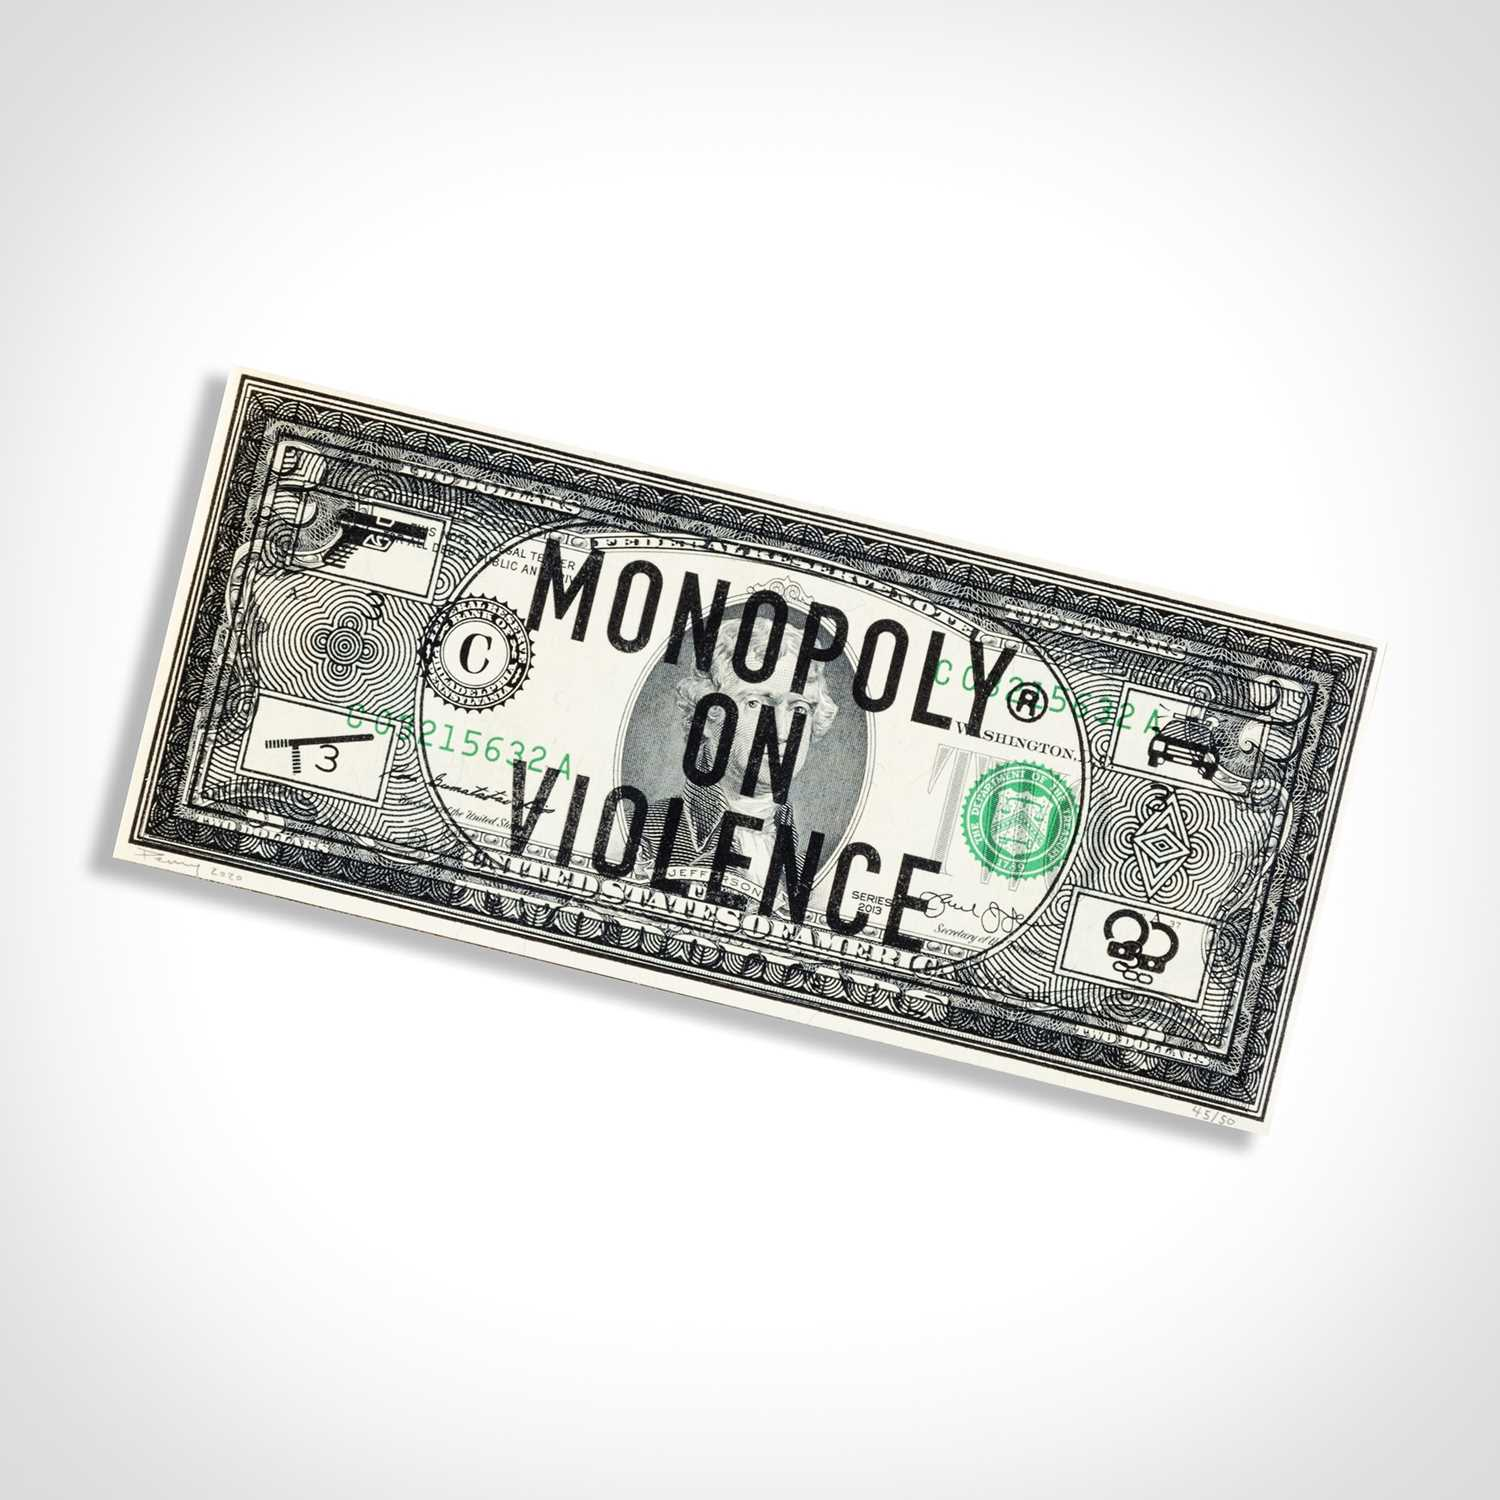 Lot 39 - Penny (British), 'Monopoly Is Violence', 2020